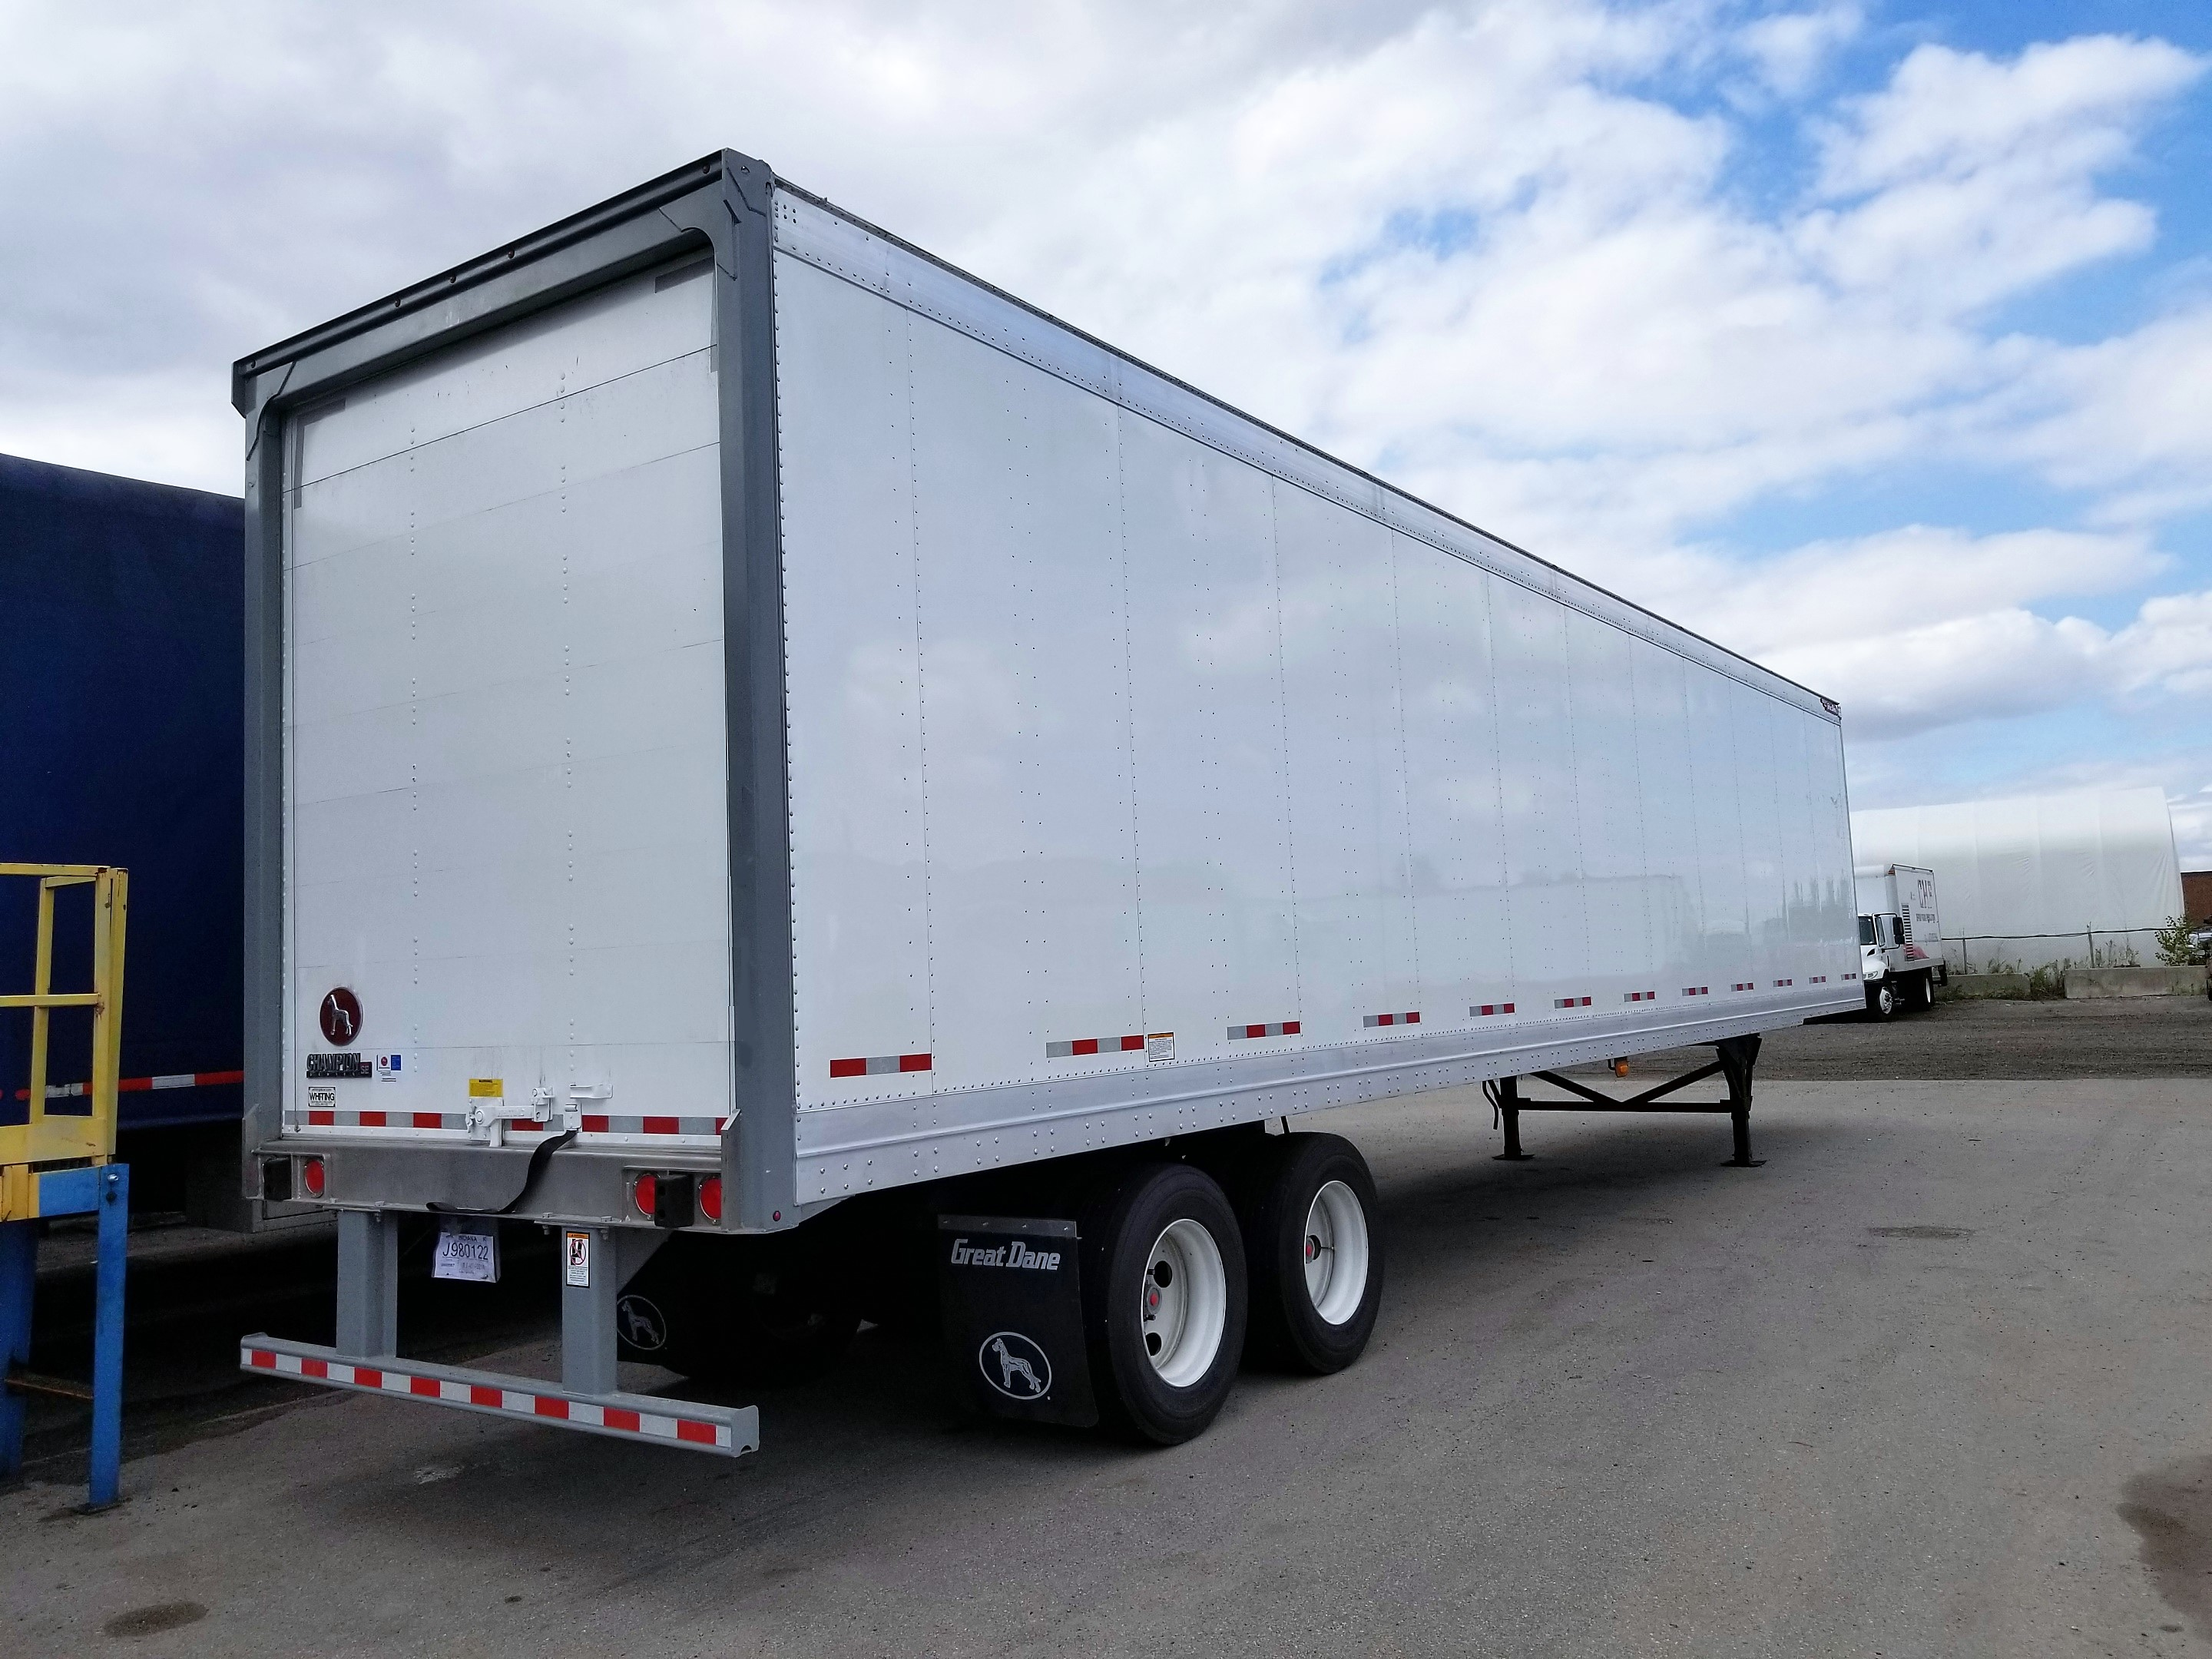 NEW GREAT DANE CHAMPION SE 48' AND 53' LOGISTIC ROLL UP DOOR TANDEM AXLE VAN TRAILERS